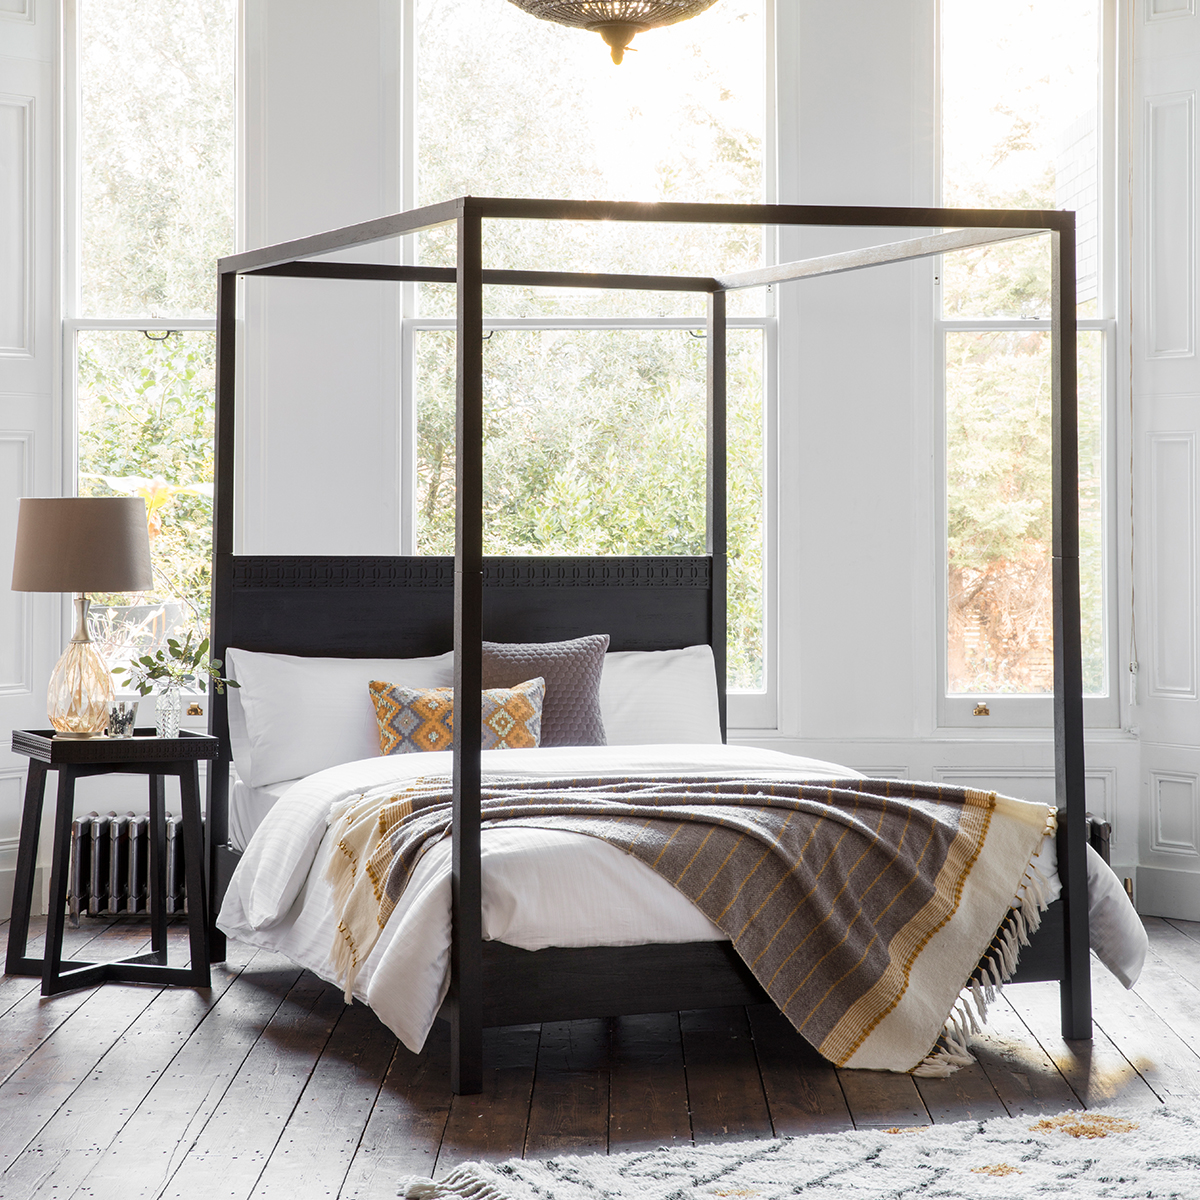 Houseology Collection Safari Boutique 4 Poster Bed